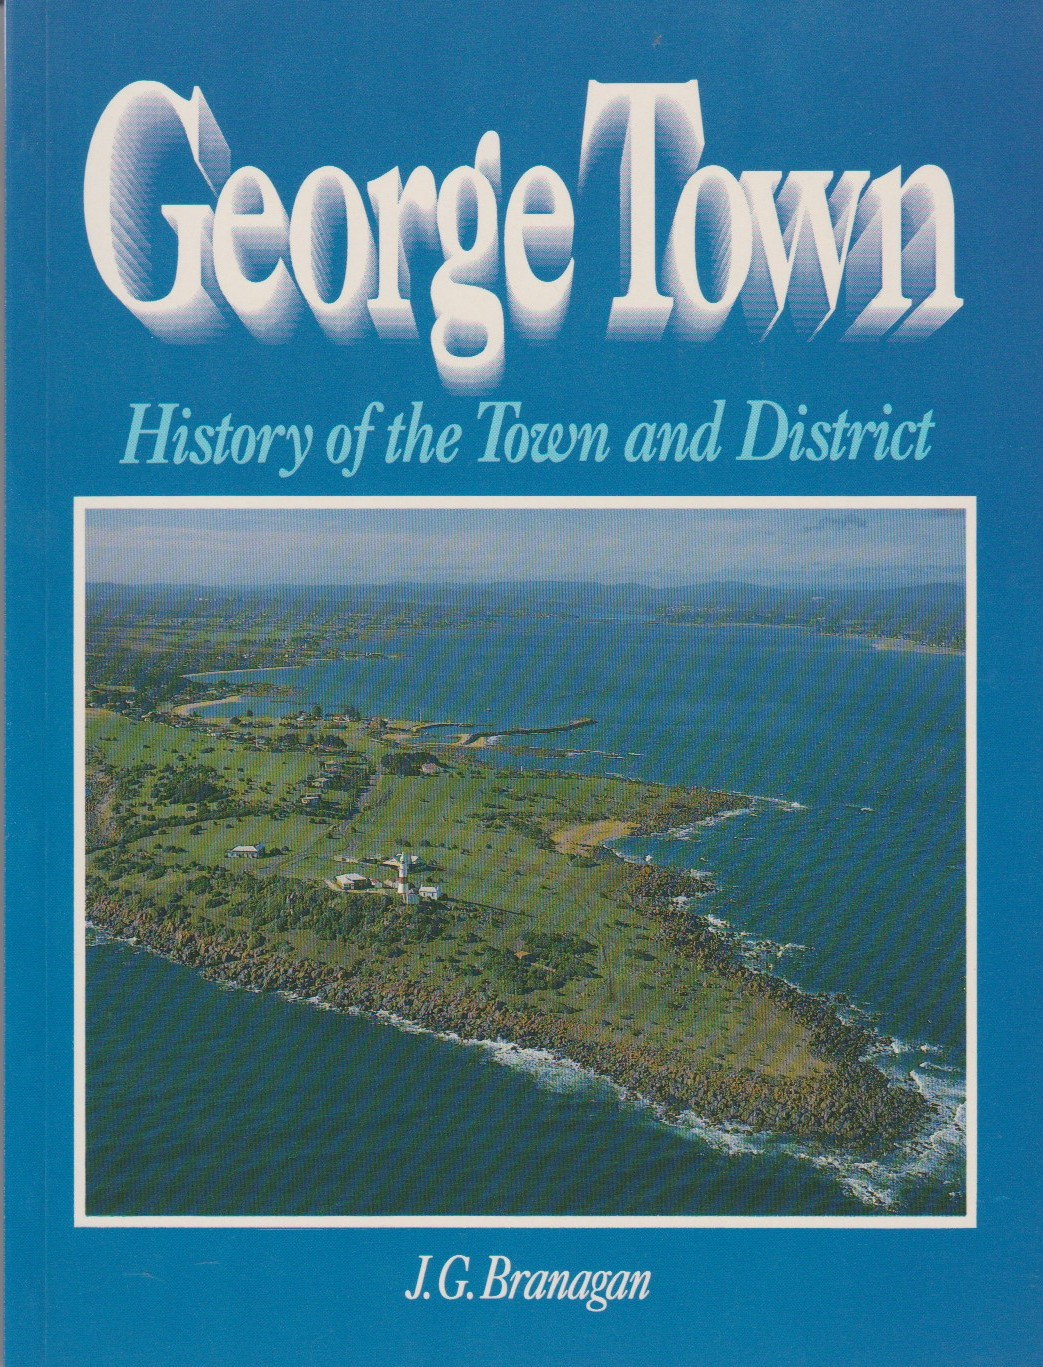 George Town - History of the town and district